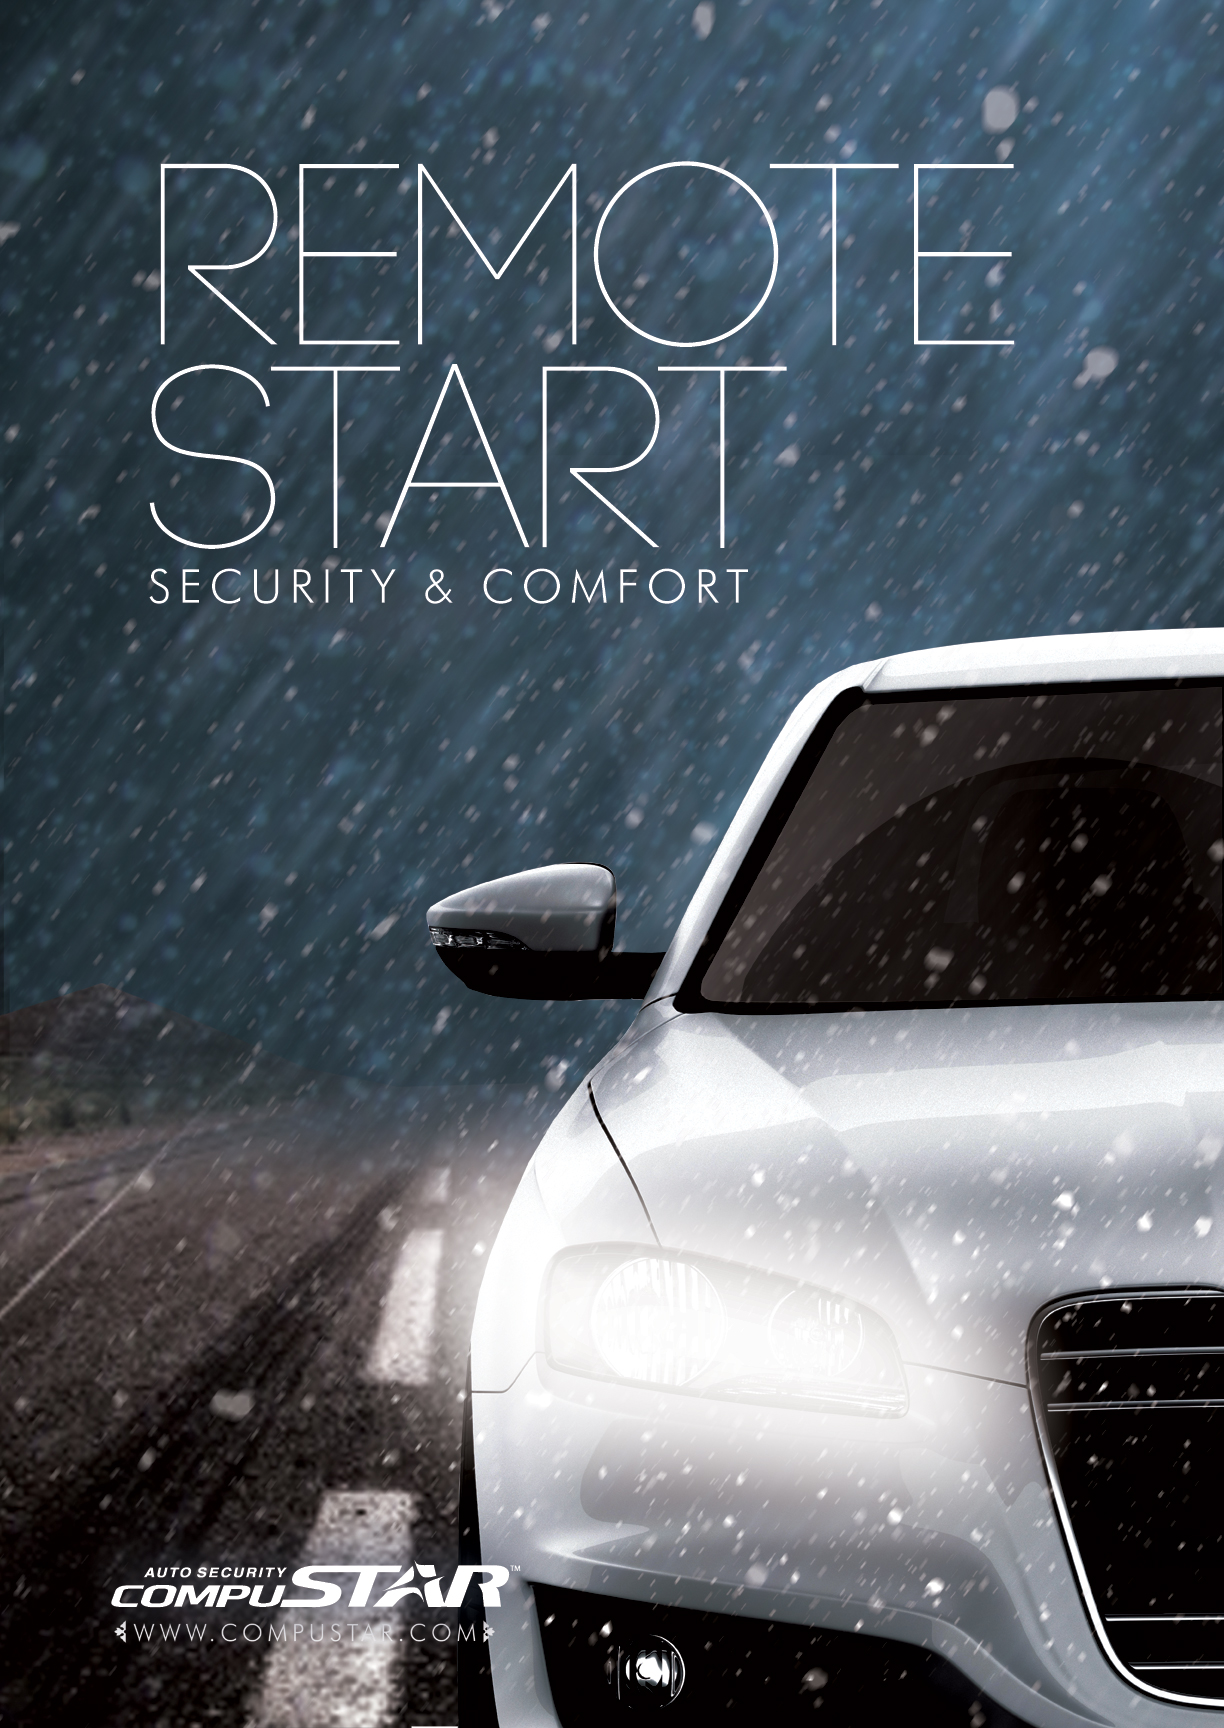 remote start posters